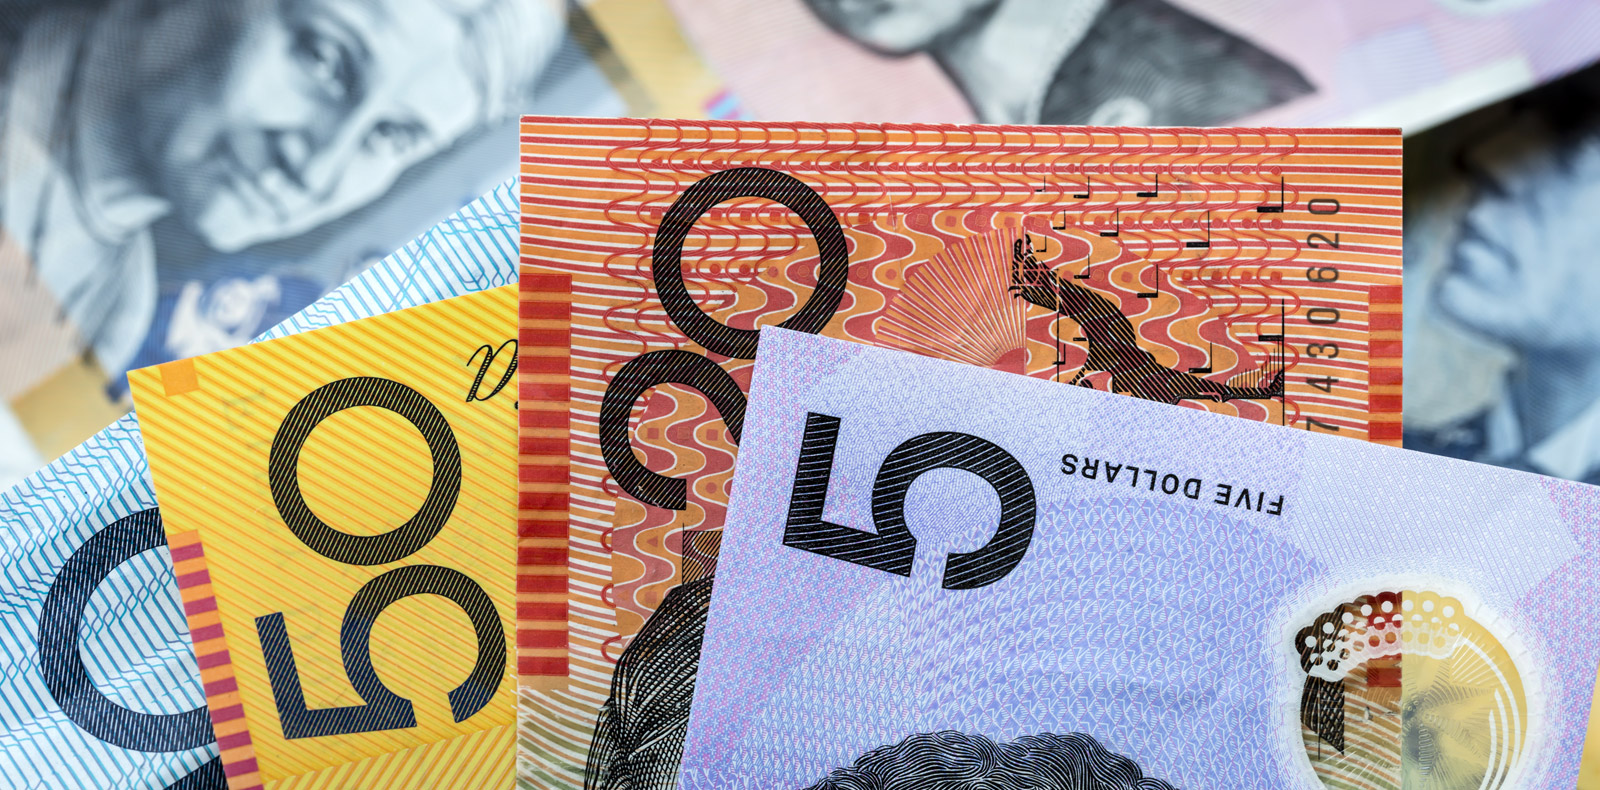 GBP/AUD rates move back below 1.85 but will the current positive trend continue?